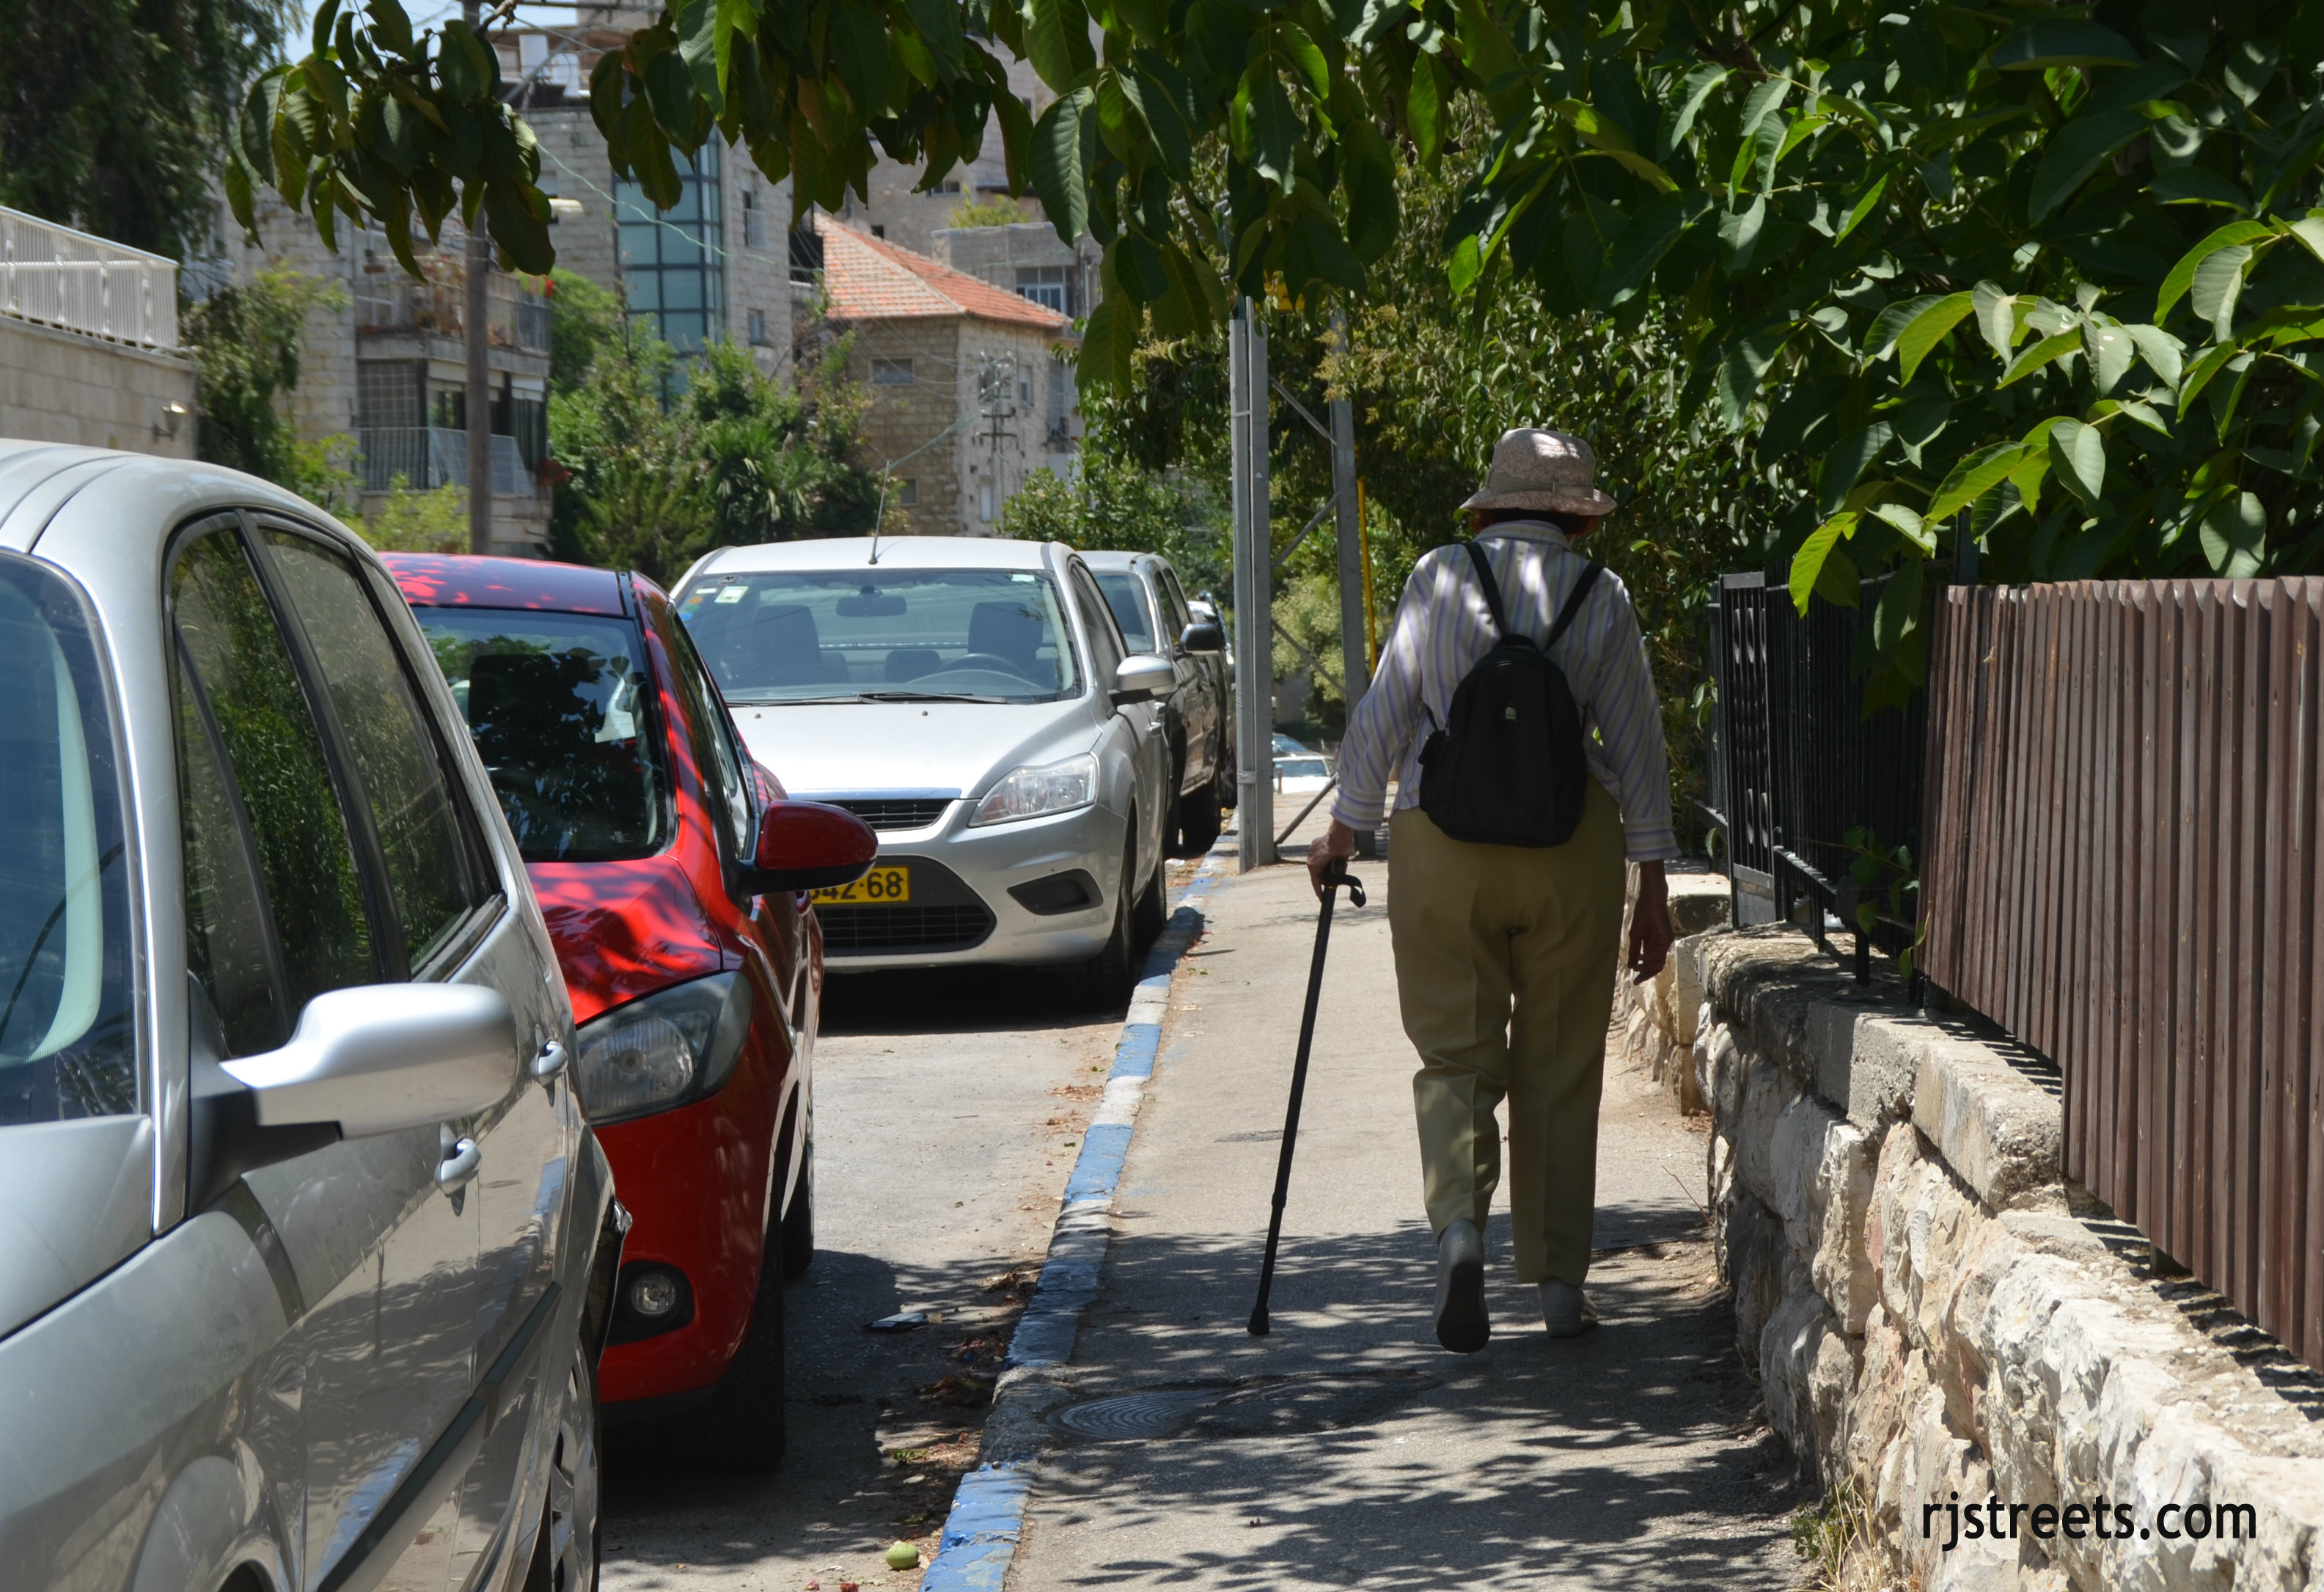 image woman walking with cane, photo Jerusalem street scene